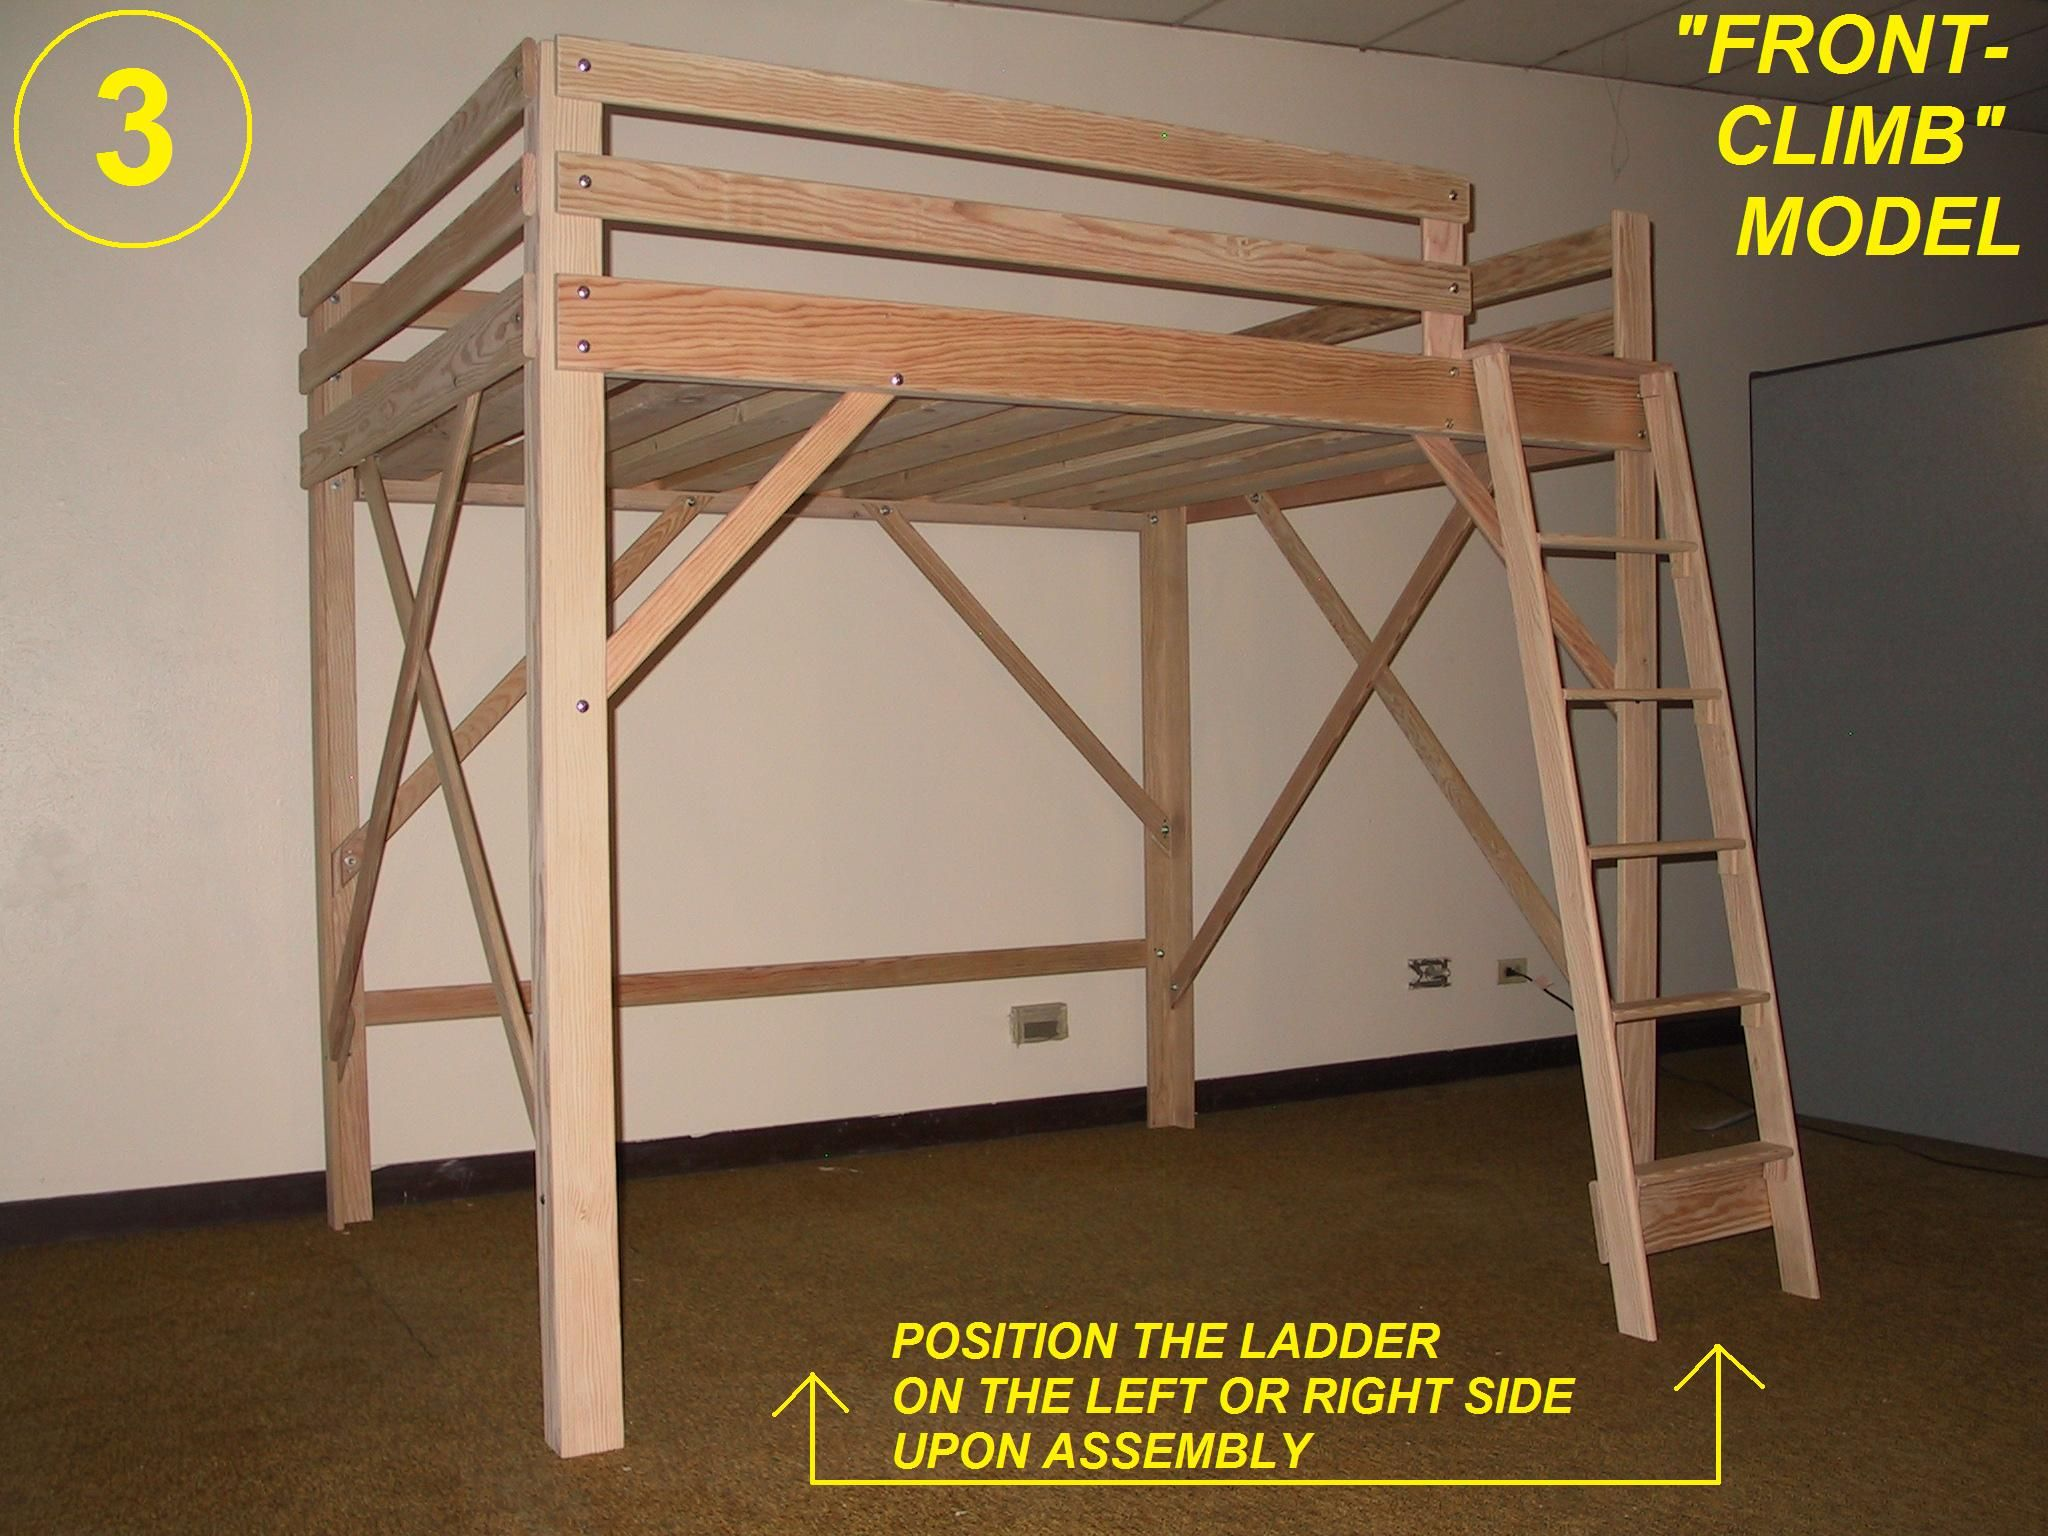 Loft Bed, Twin, Full, Queen, King & Extra Long Loft Beds, Bunk Bed ...